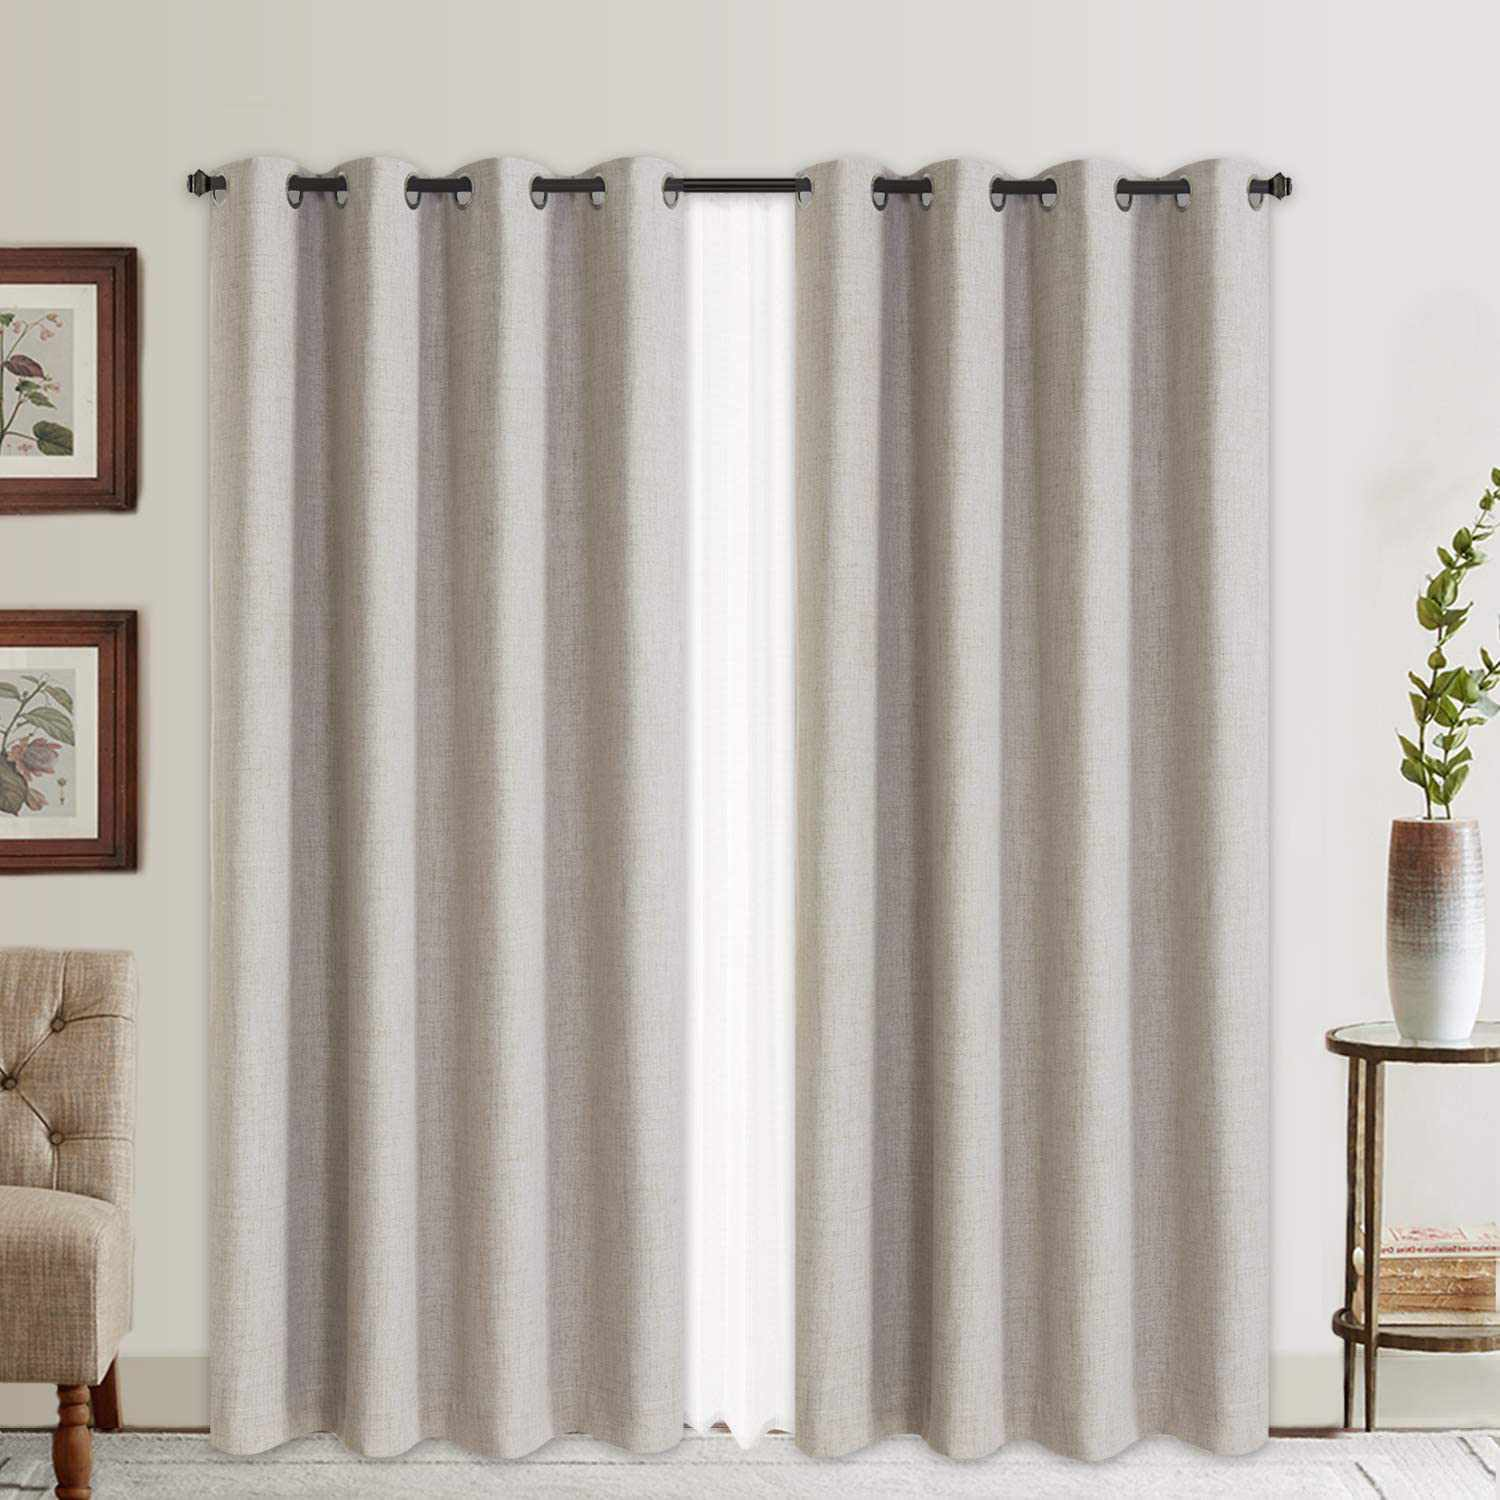 The 9 Best Blackout Curtains Of 2021